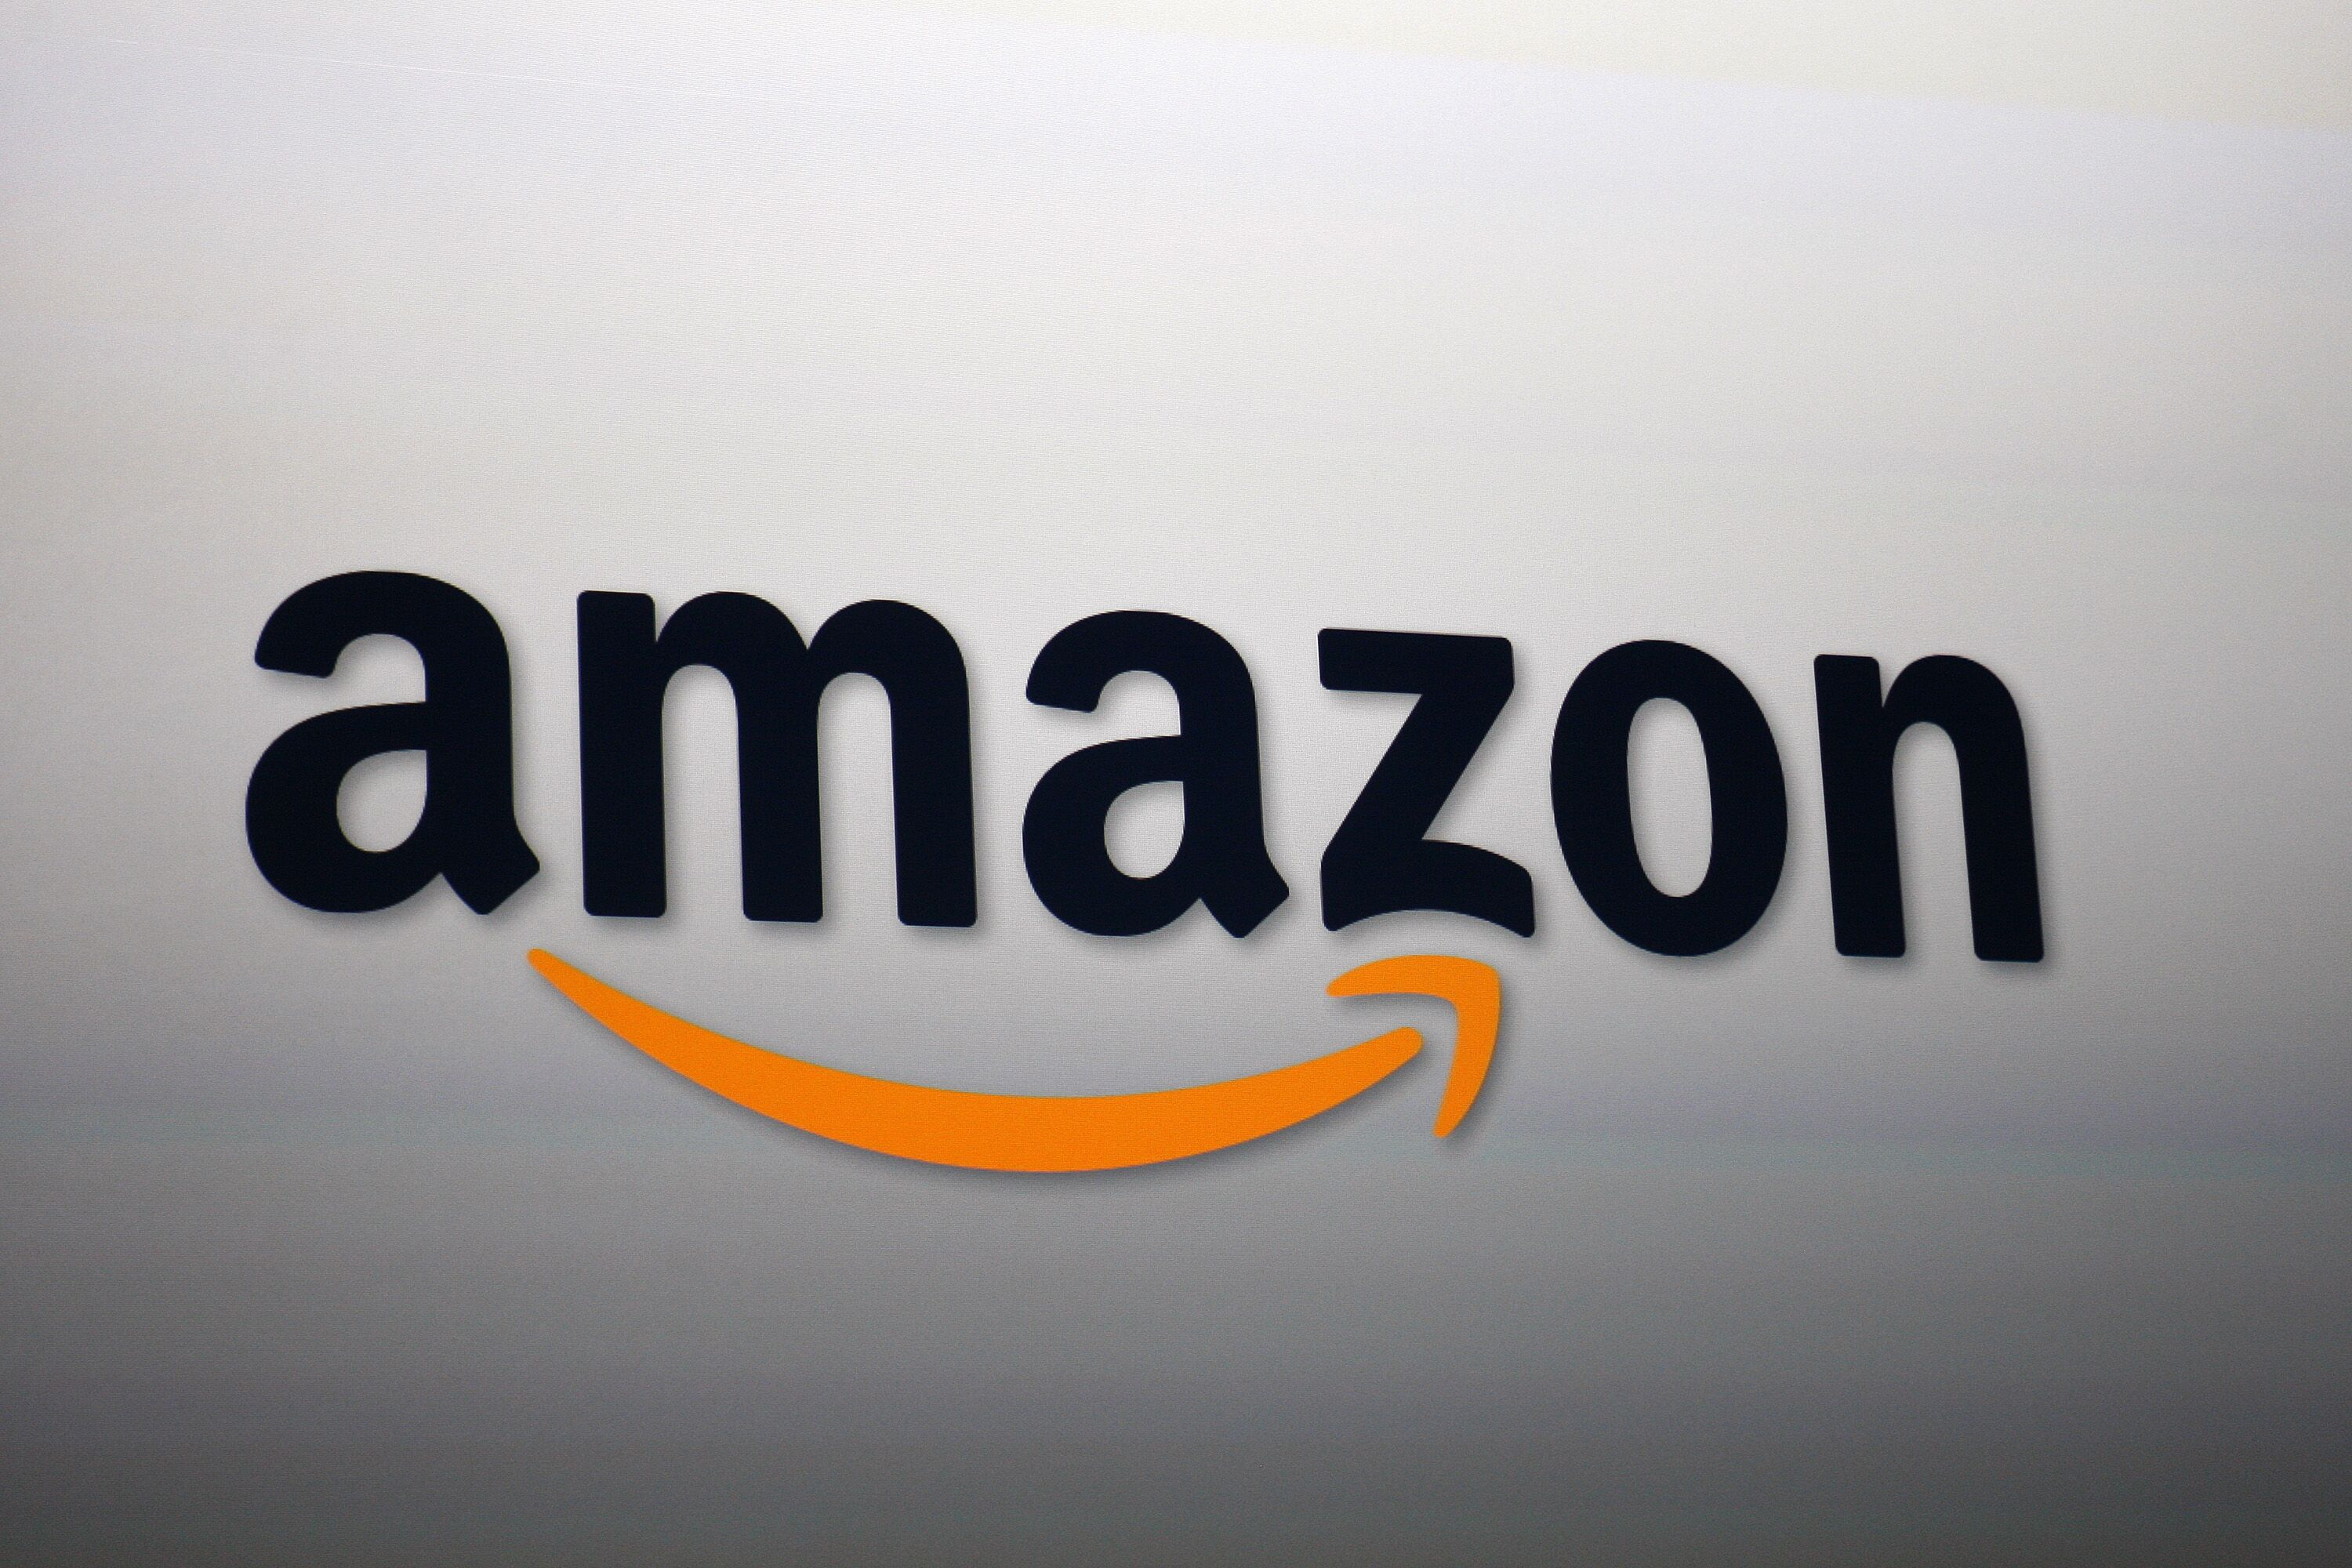 Should Amazon be worried about the low cost of Disney+?